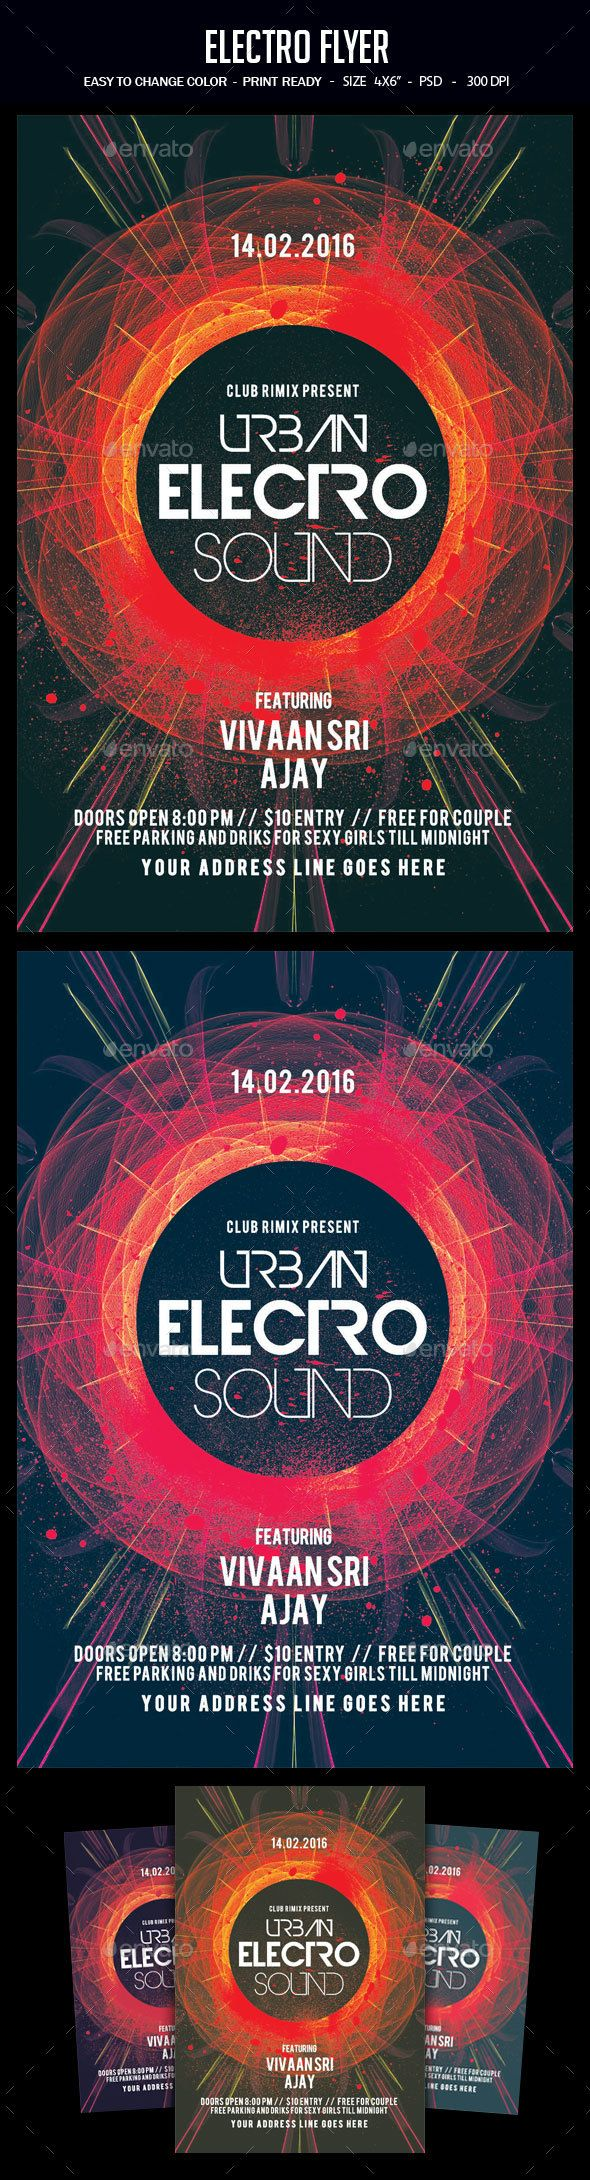 Electro Flyer  Electro Music Flyer Template And Template